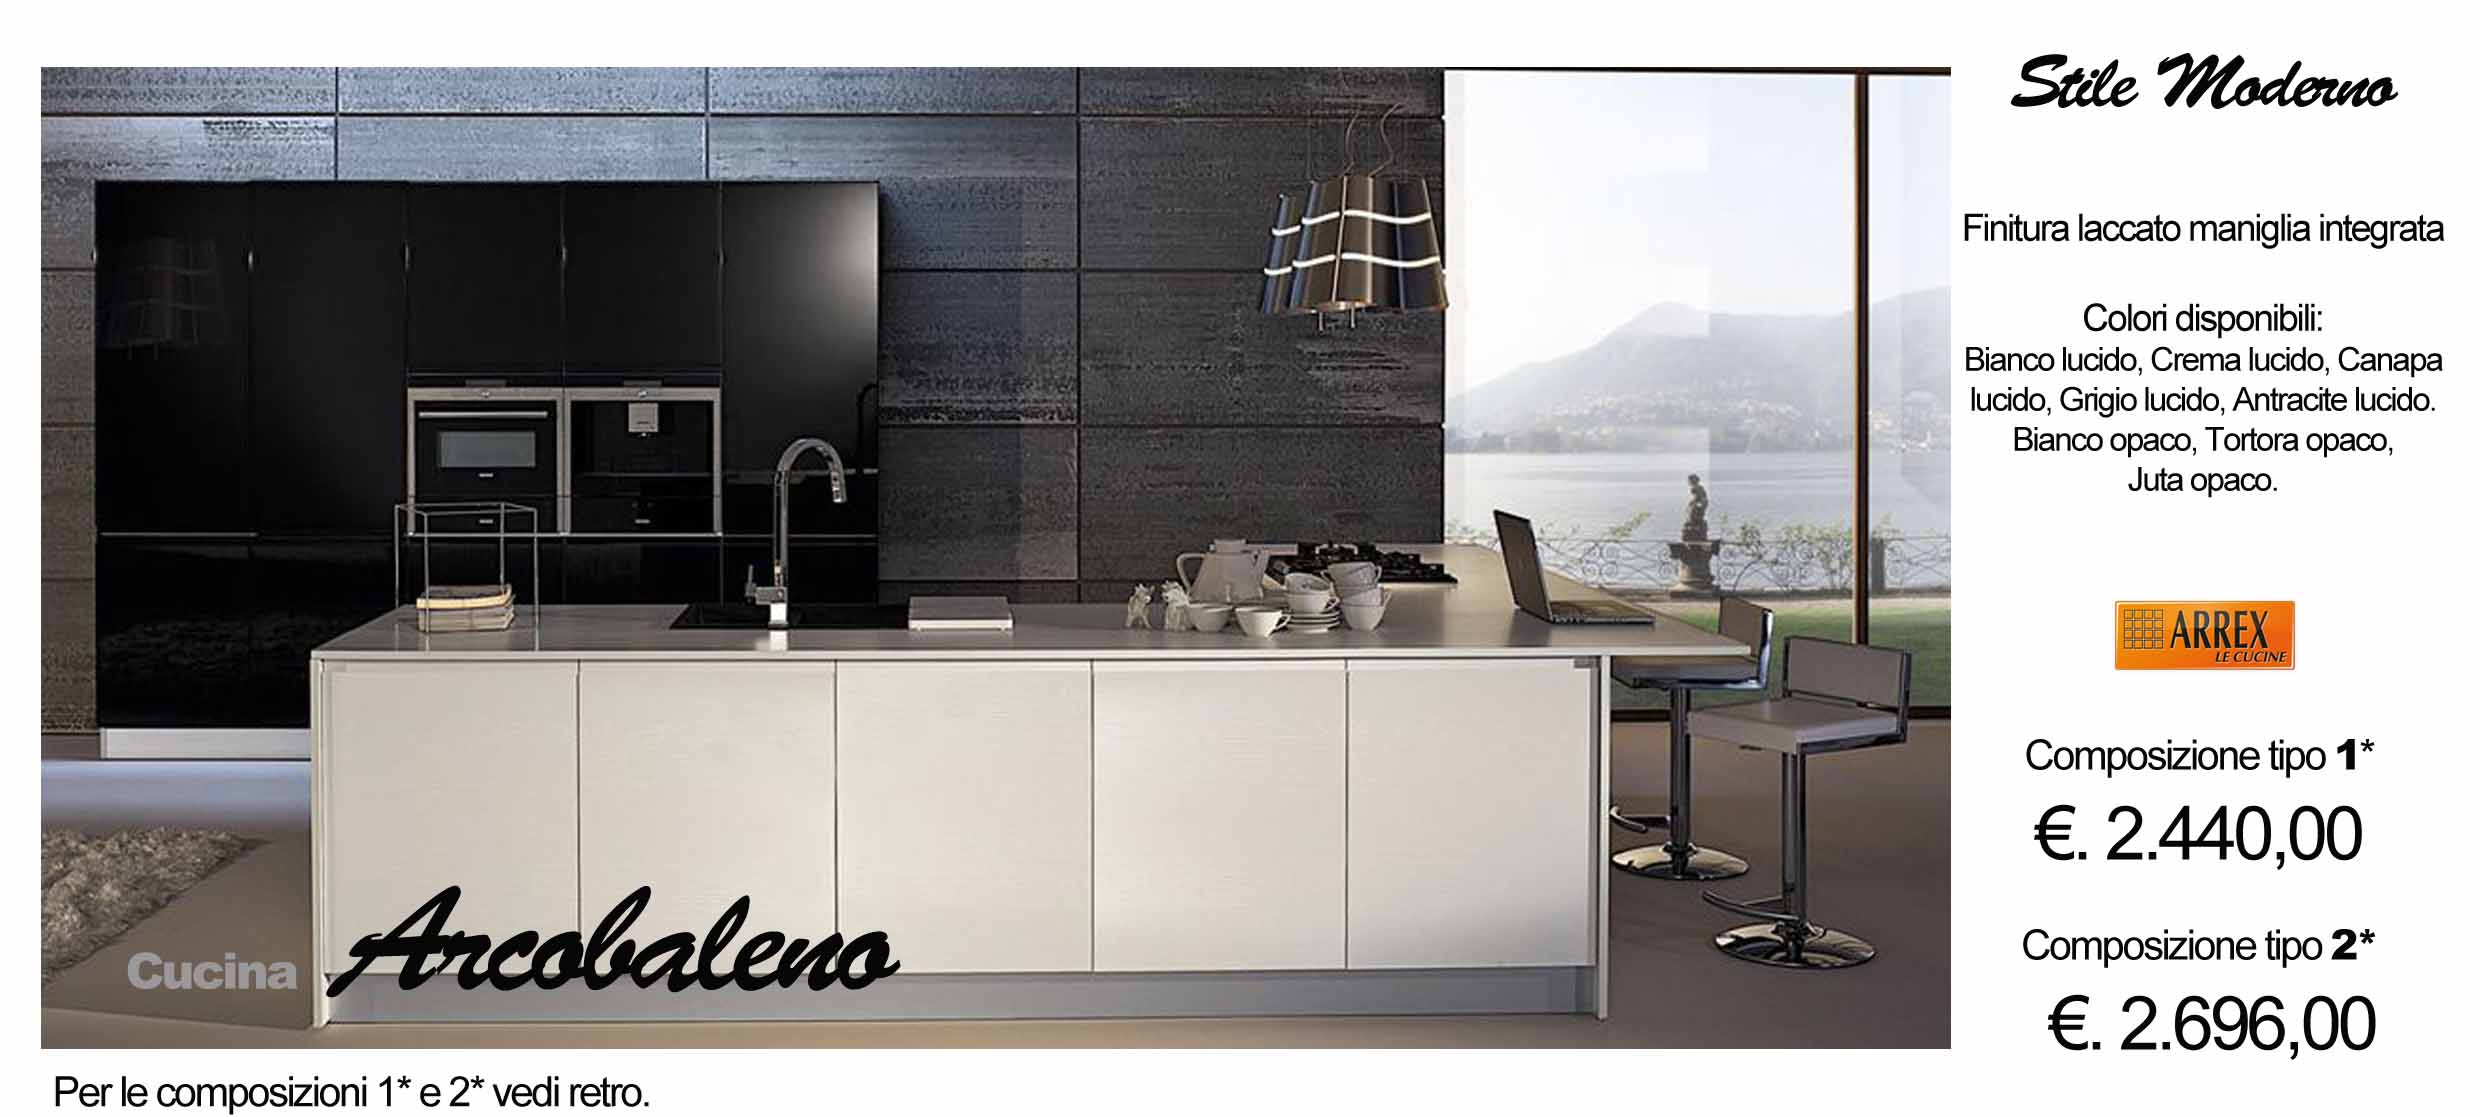 Best Arrex Cucine Catalogo Images - acrylicgiftware.us ...